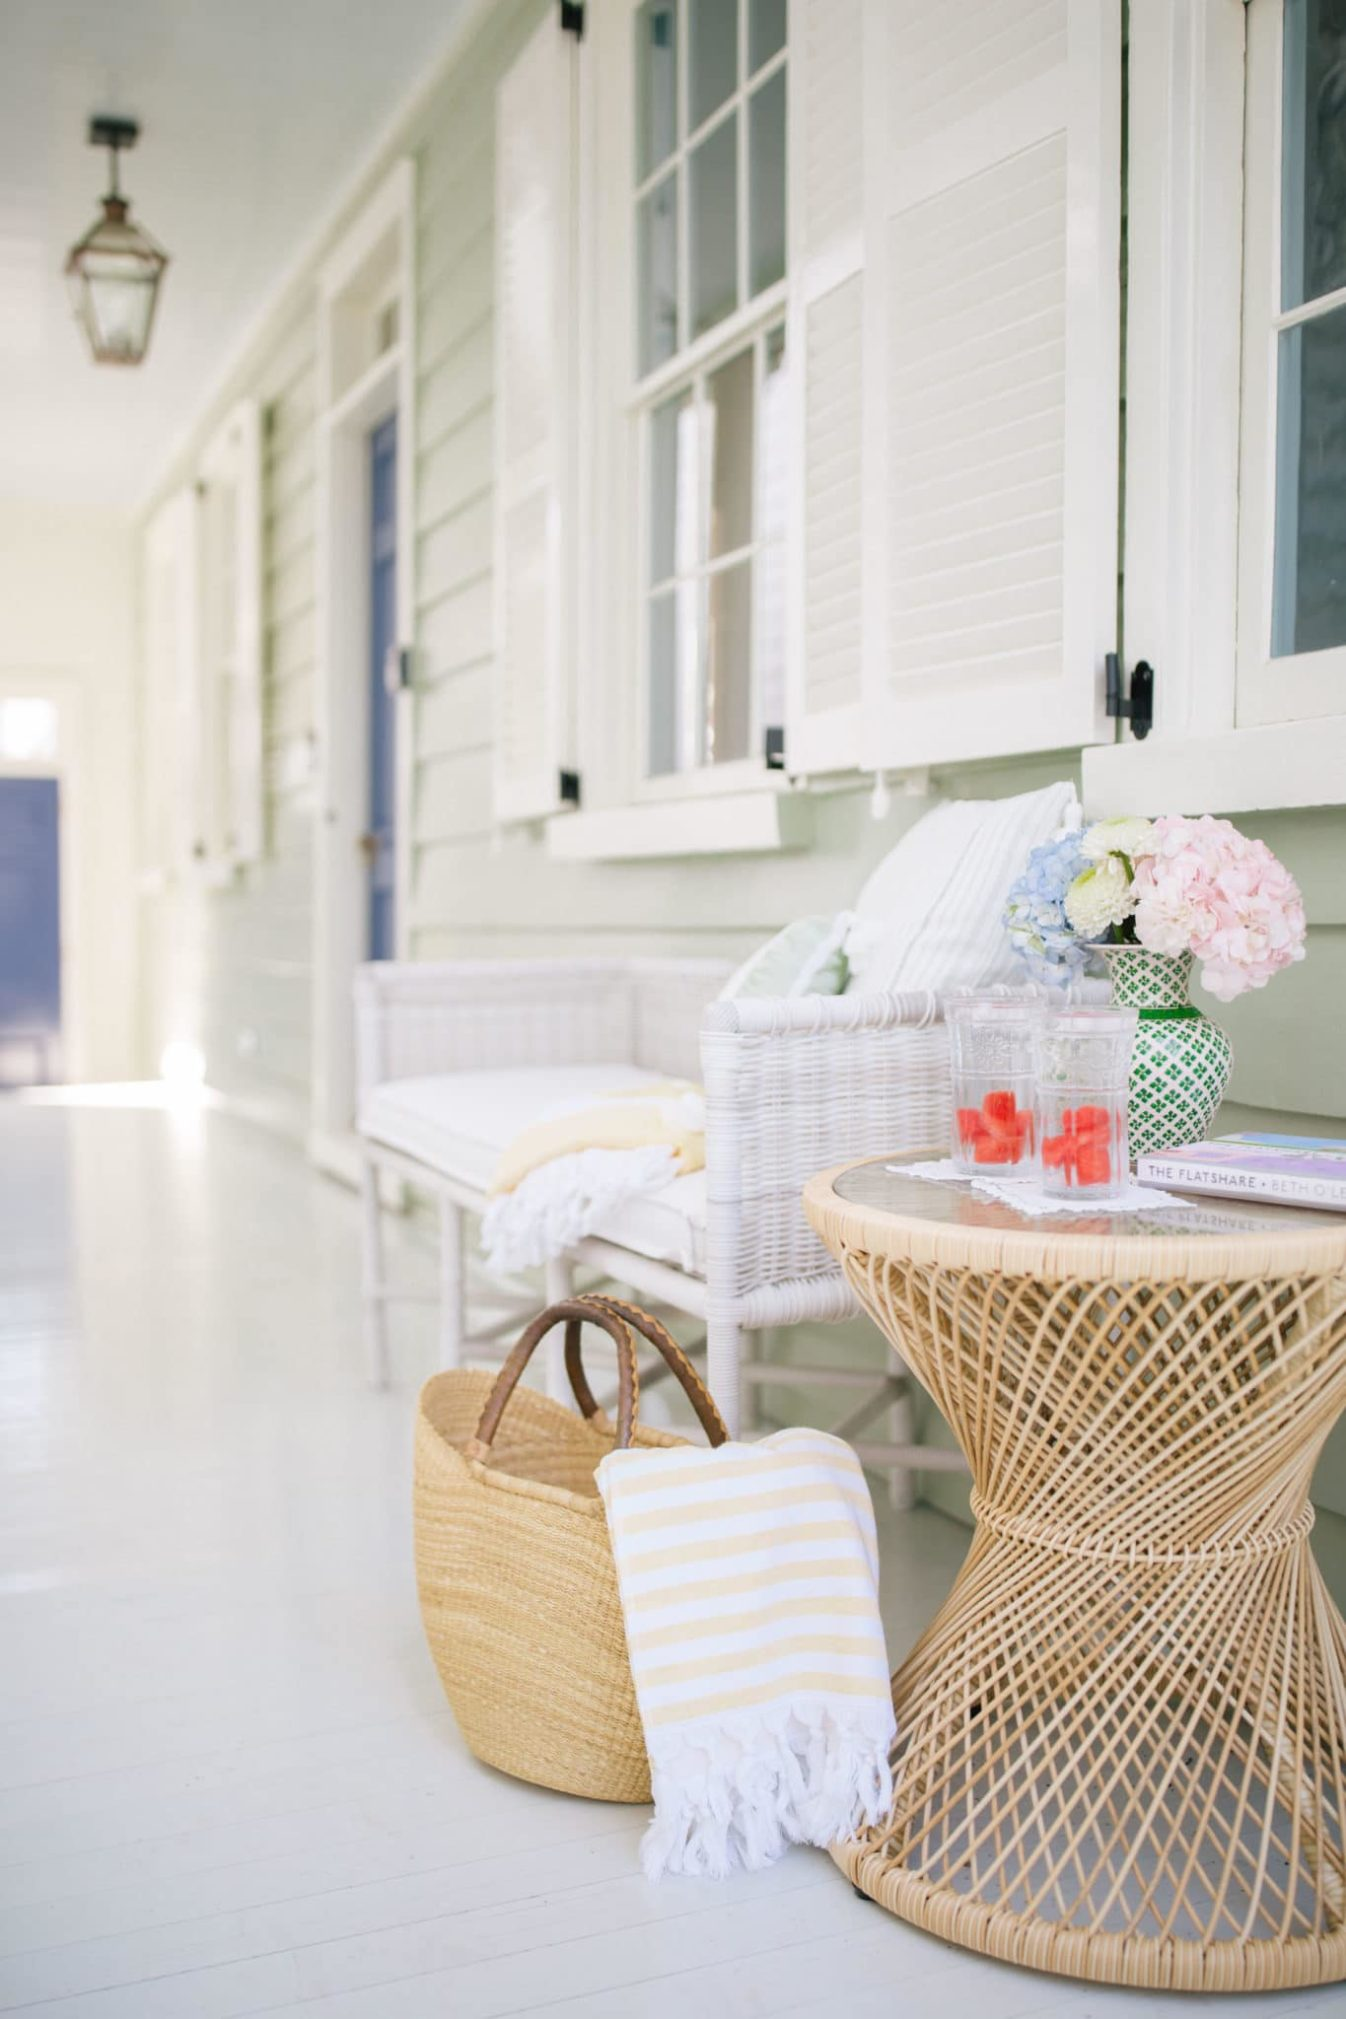 10 Ideas for Decorating Your Summer Porch | Rhyme & Reason